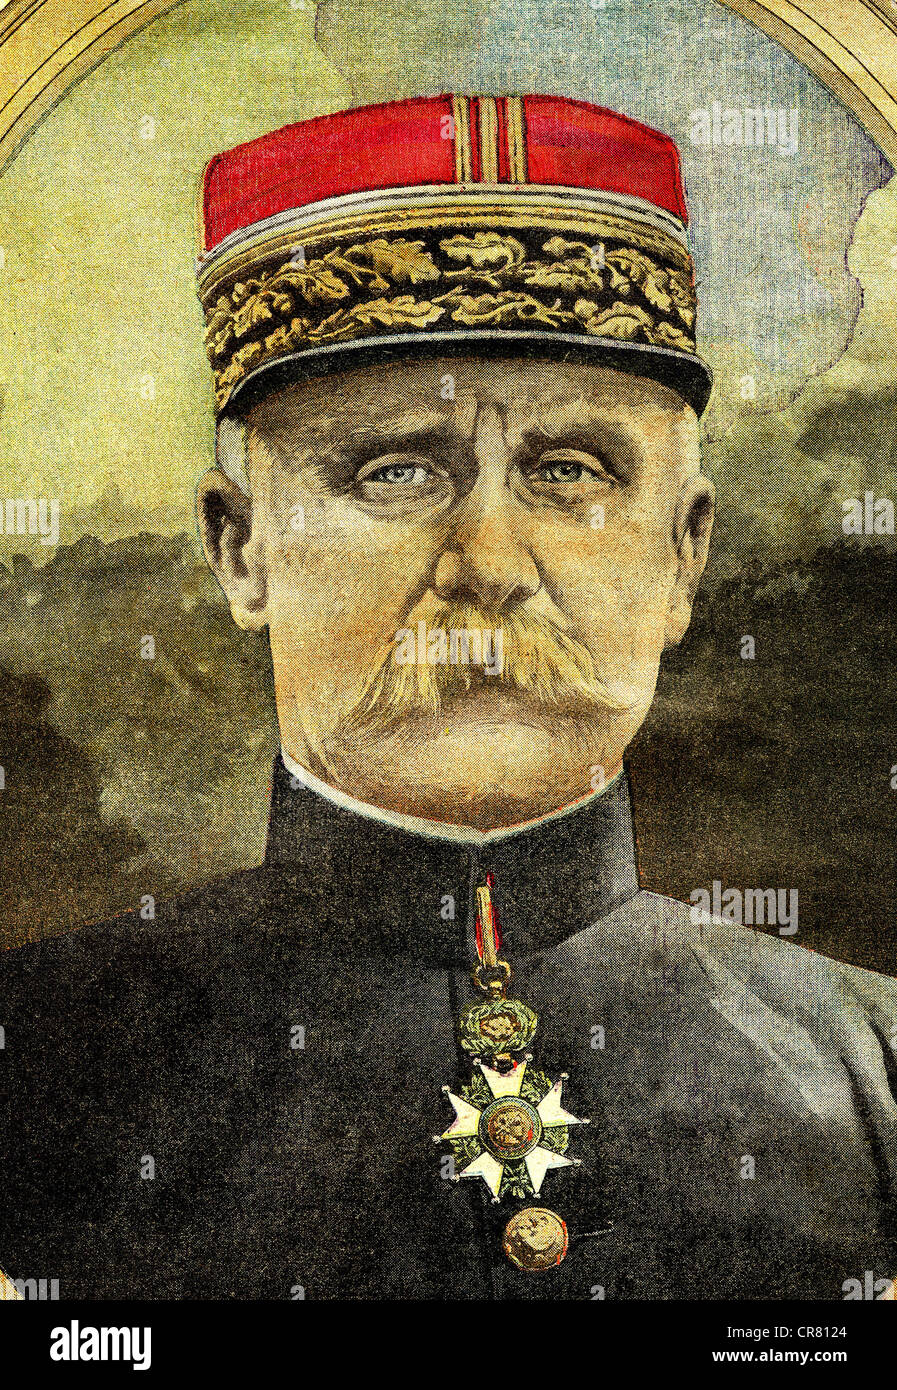 General Philippe Pétain, commander of the army in Verdun in First World War, historical illustration, 1918 - Stock Image